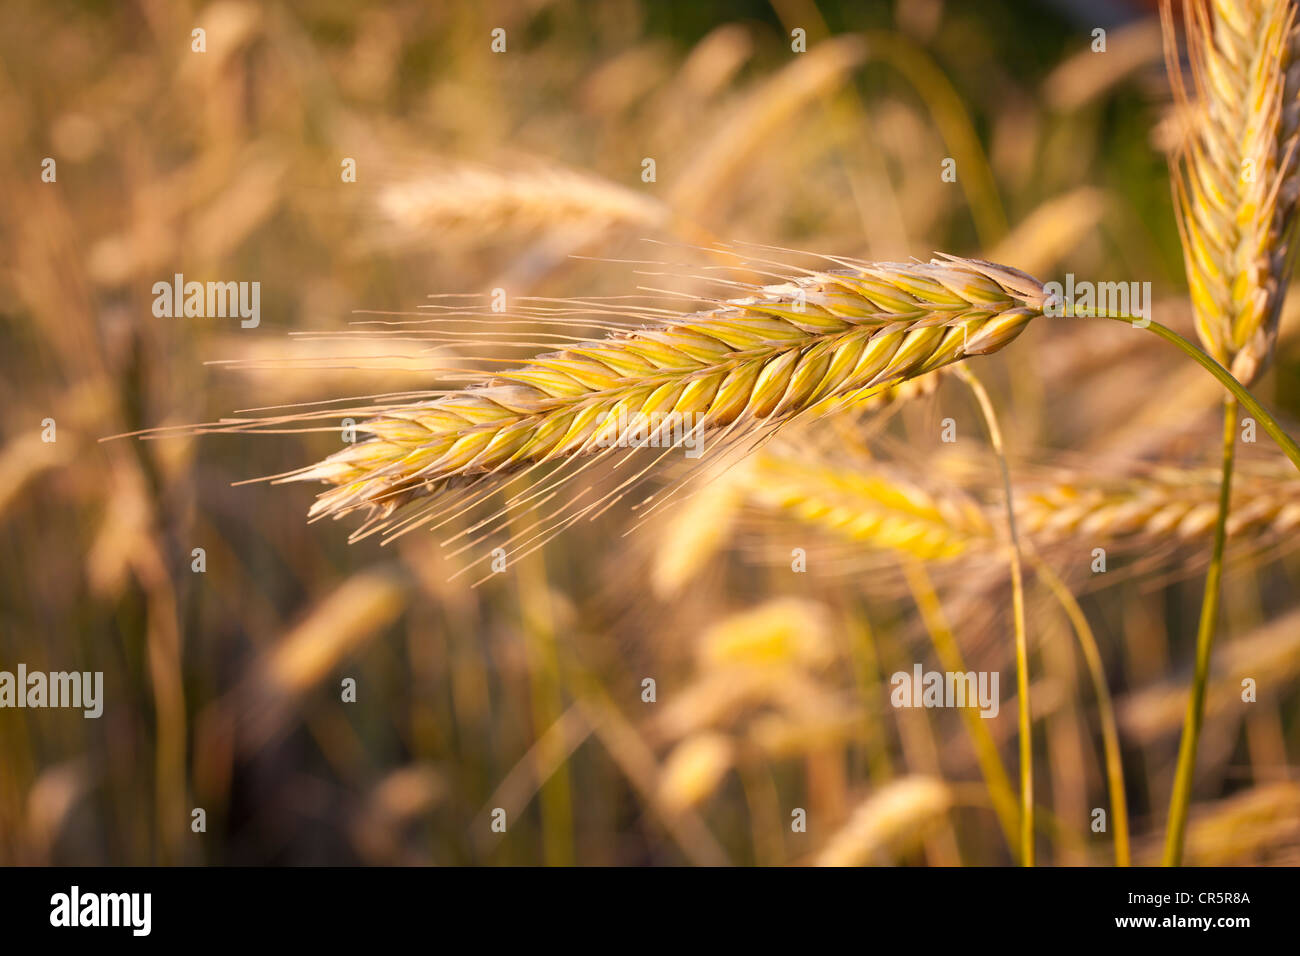 Ears of corn, rye (Secale cereale), corn field before maturity - Stock Image